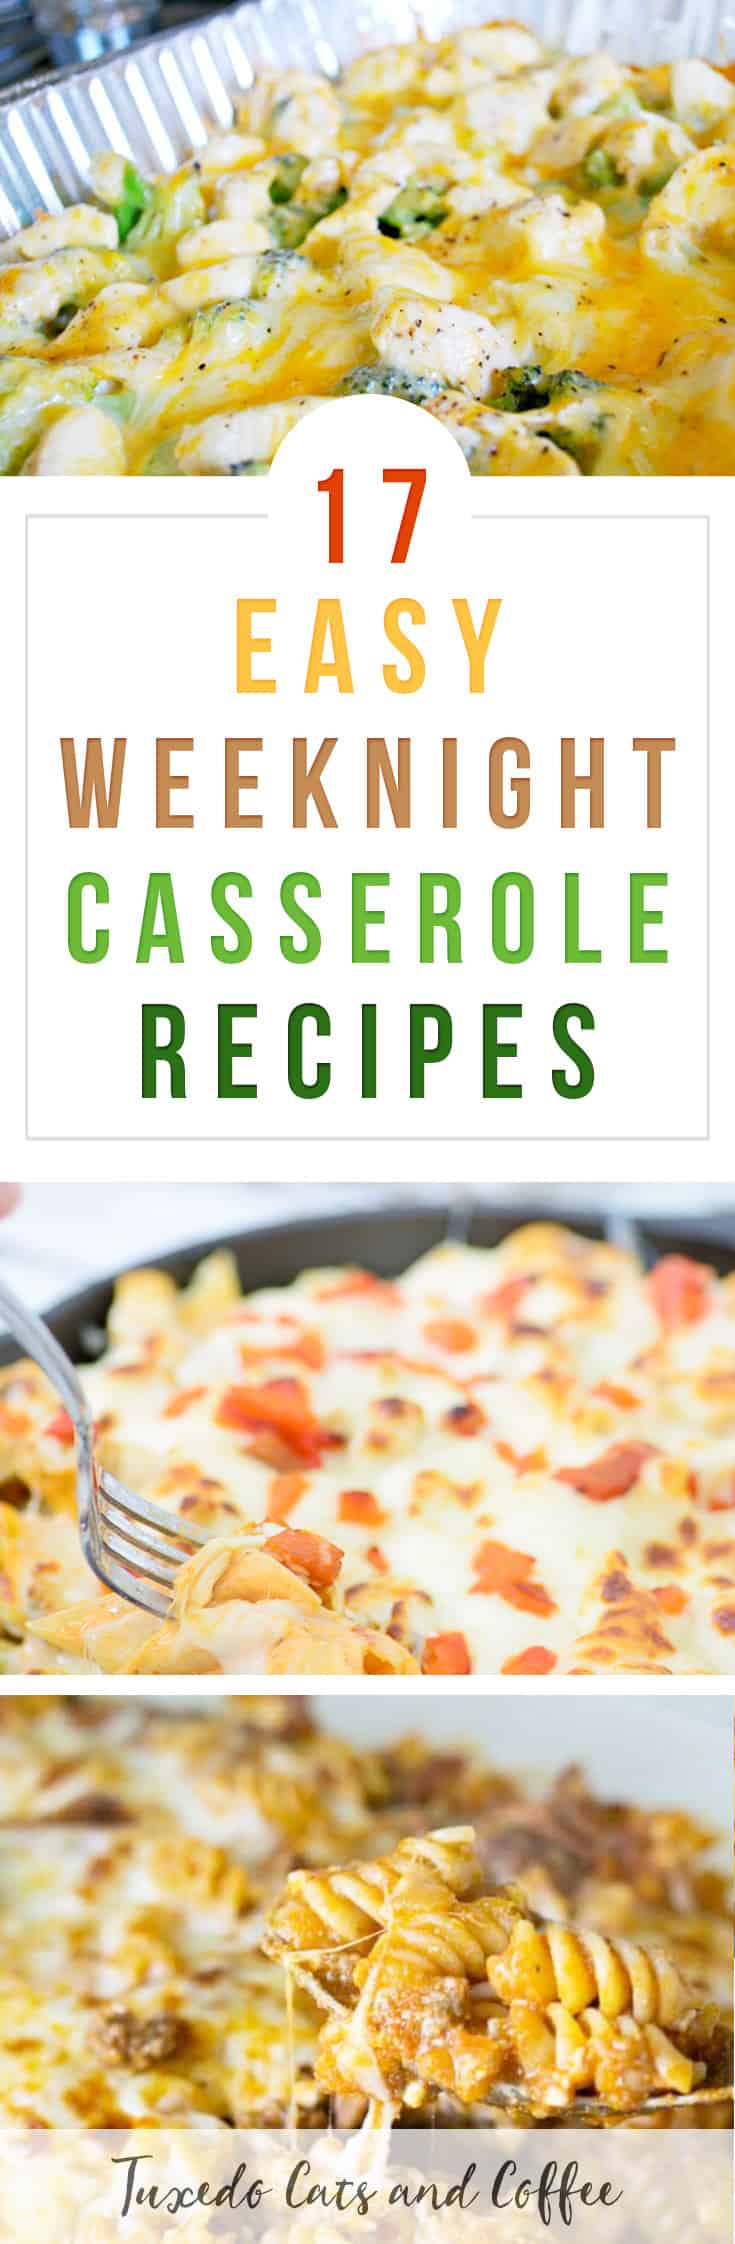 Need a quick, filling, and delicious meal for a weeknight dinner? Here are 17 easy weeknight casserole recipes, or cheap and easy casserole meal ideas.